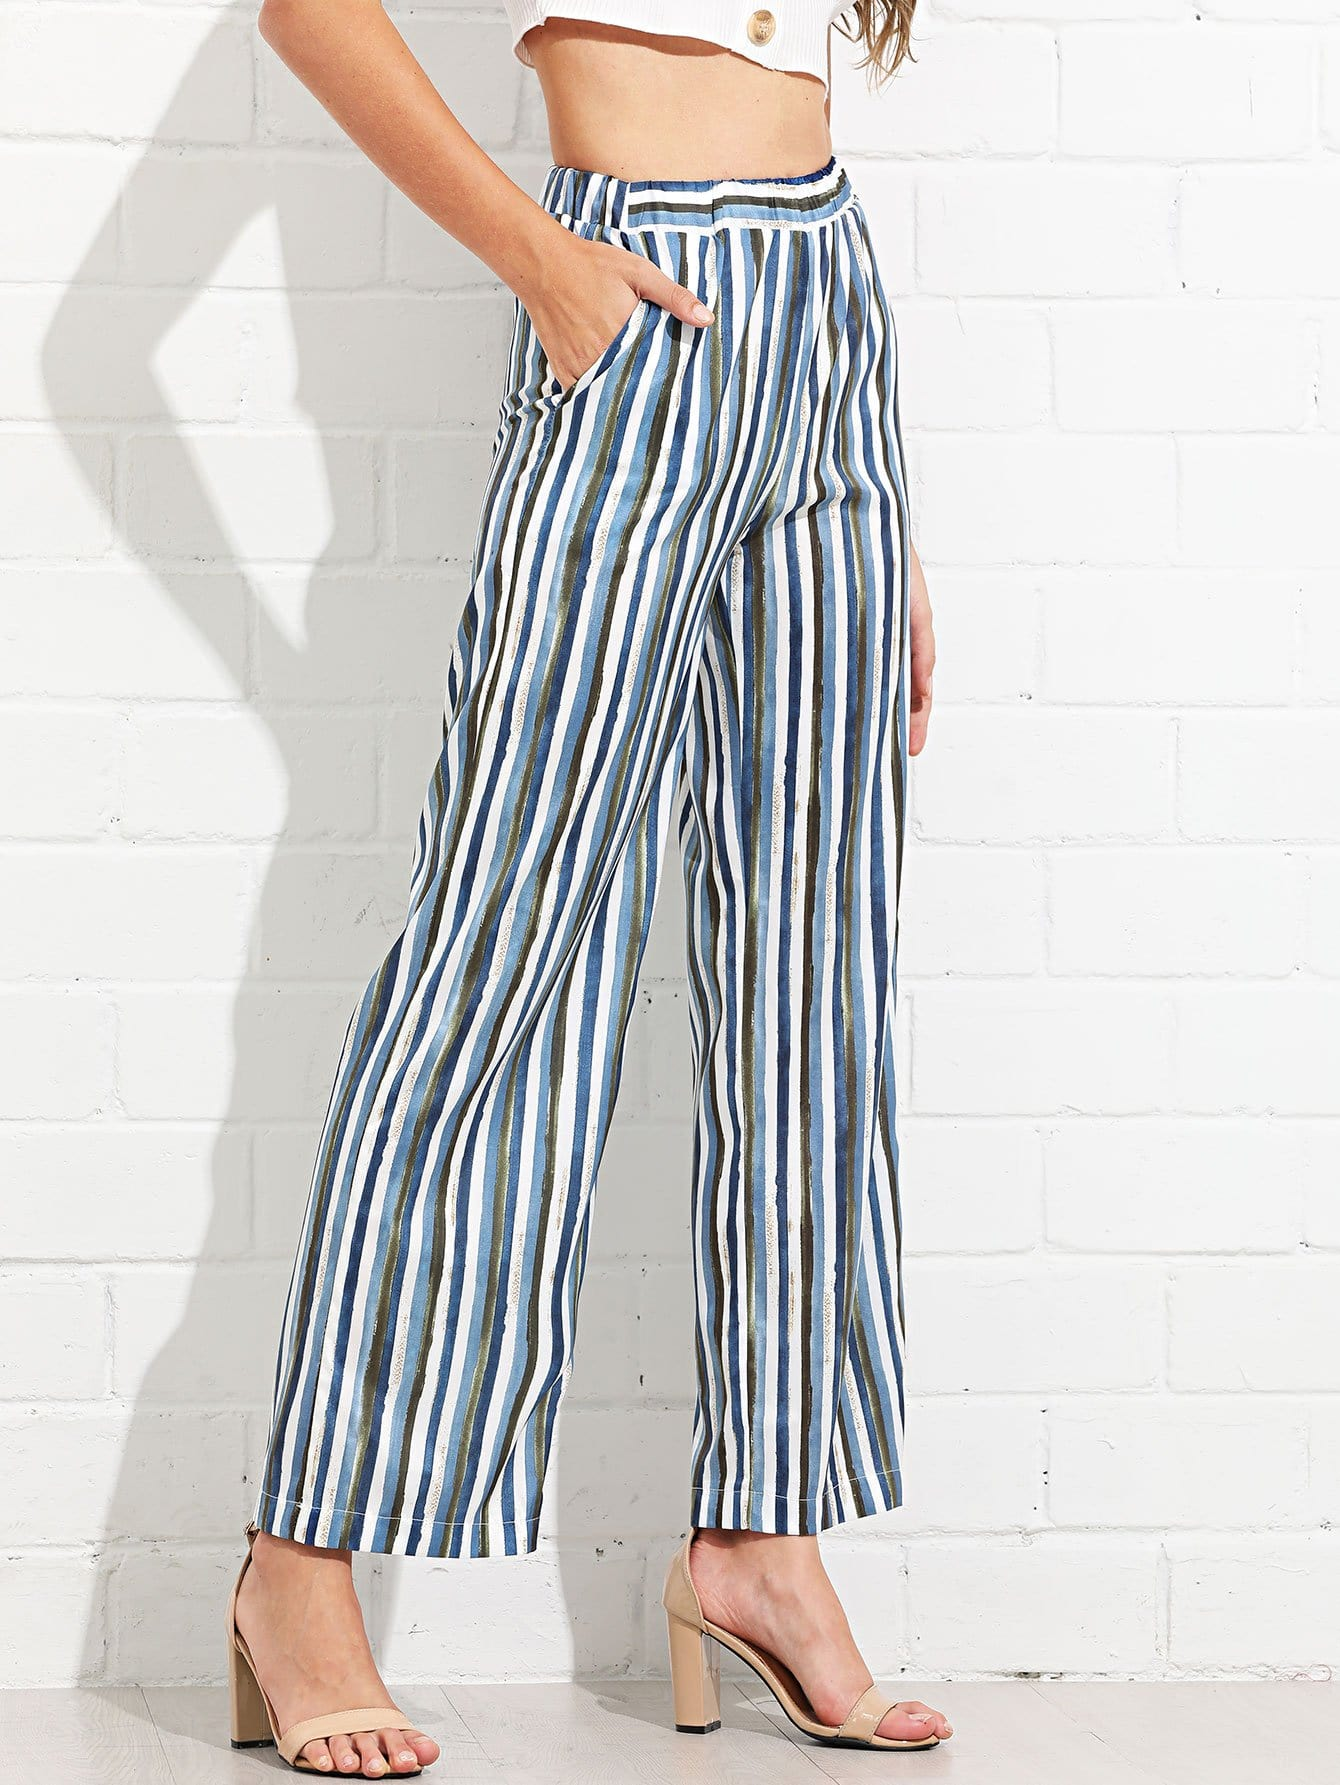 Elastic Waist Striped Palazzo Pants kids elastic waist striped pants